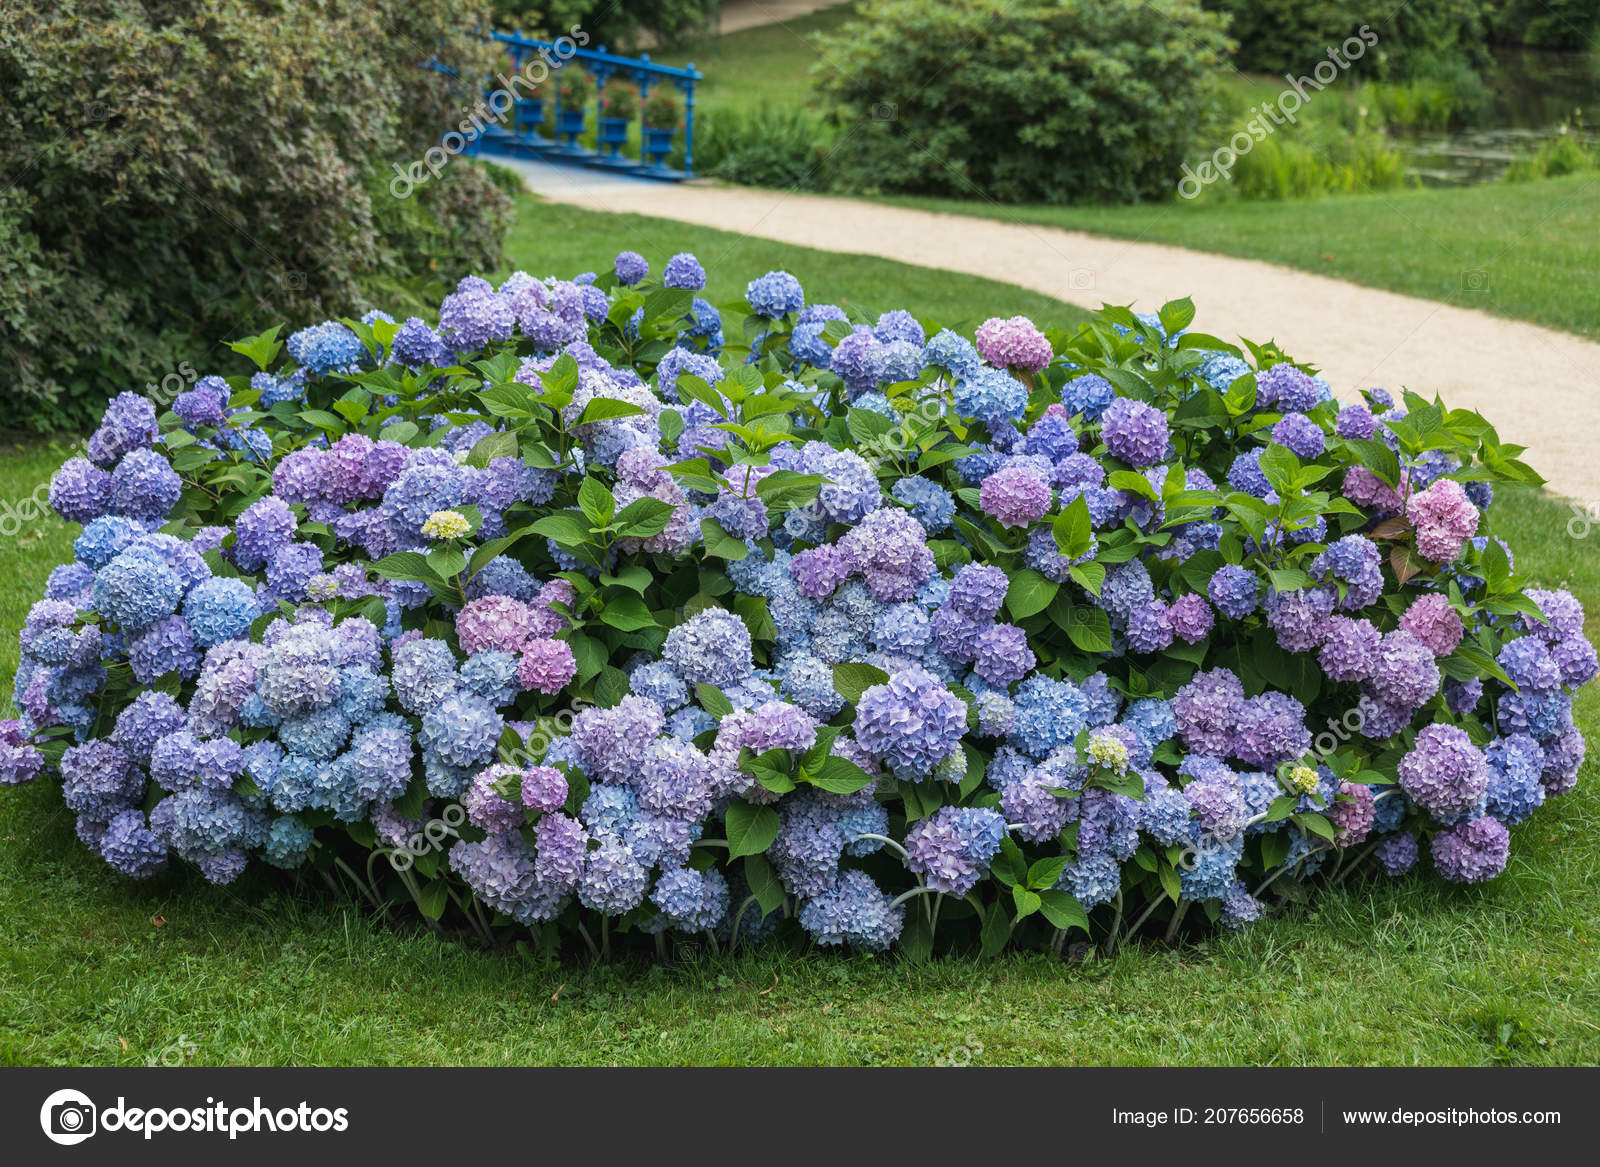 Beautiful Flowers Fuerst Pueckler Park Bad Muskau Germany Stock